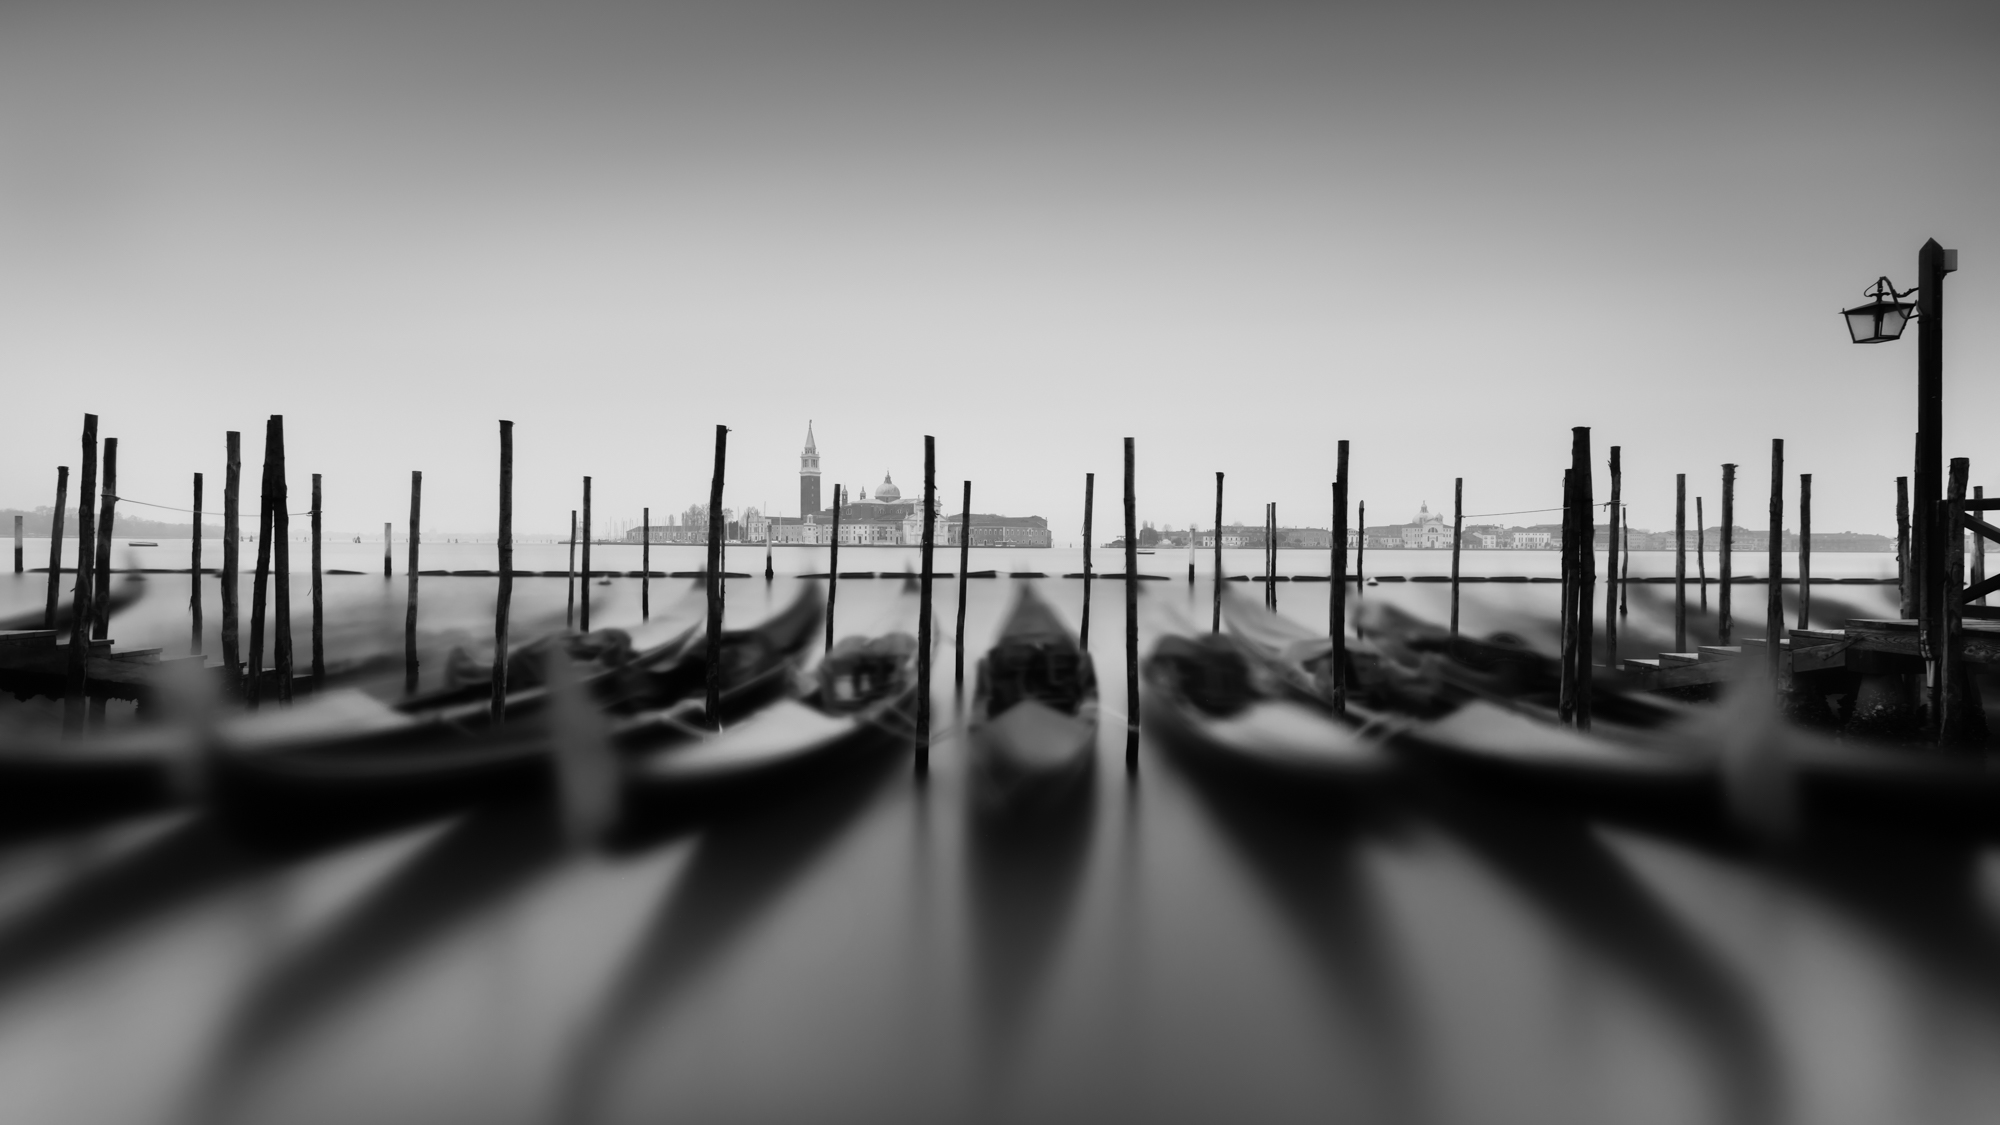 Gondolas Venice Italy, long exposure